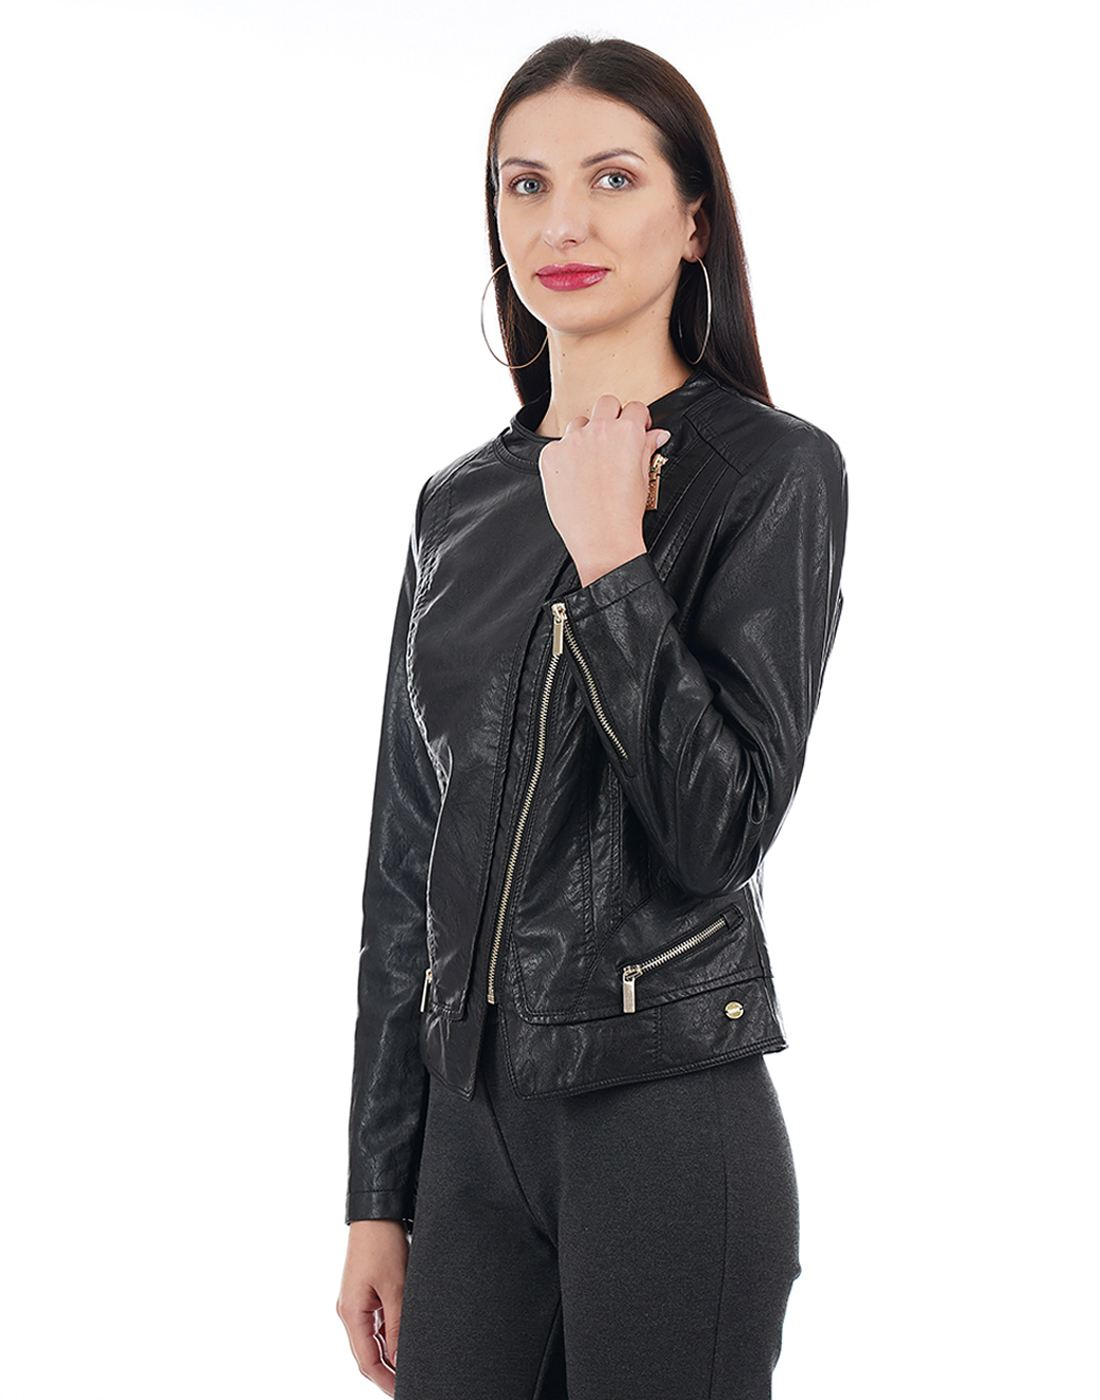 U.S. Polo Assn. Women Black Jacket